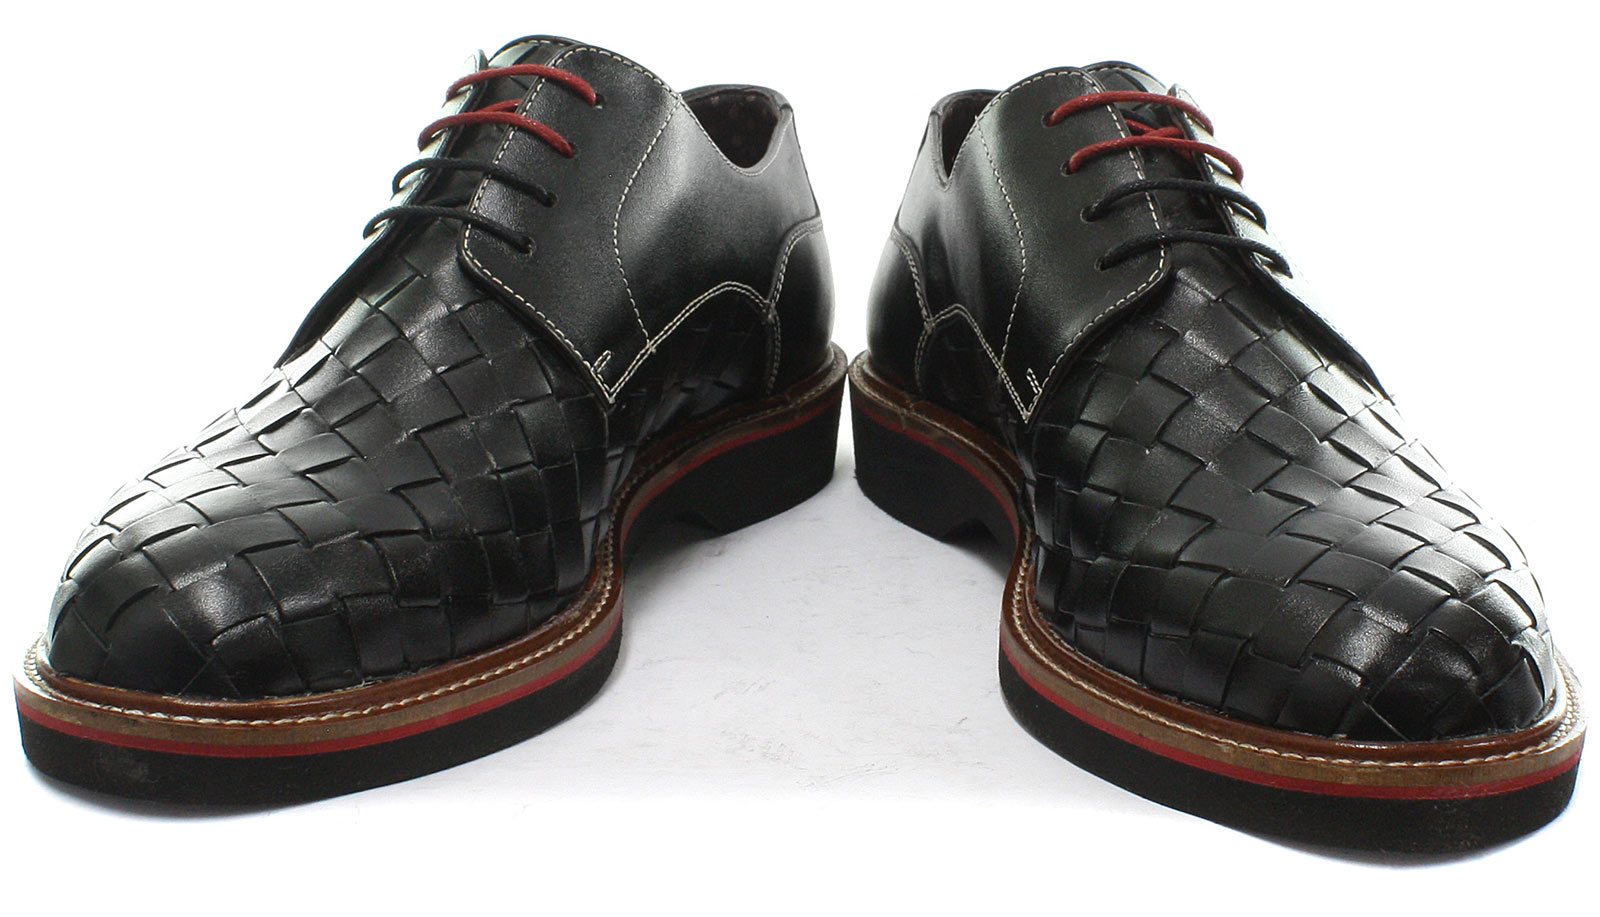 988ee1a220a6 Details about New London Brogues Branson Mens Lace Up Derby Shoes ALL SIZES  AND COLOURS